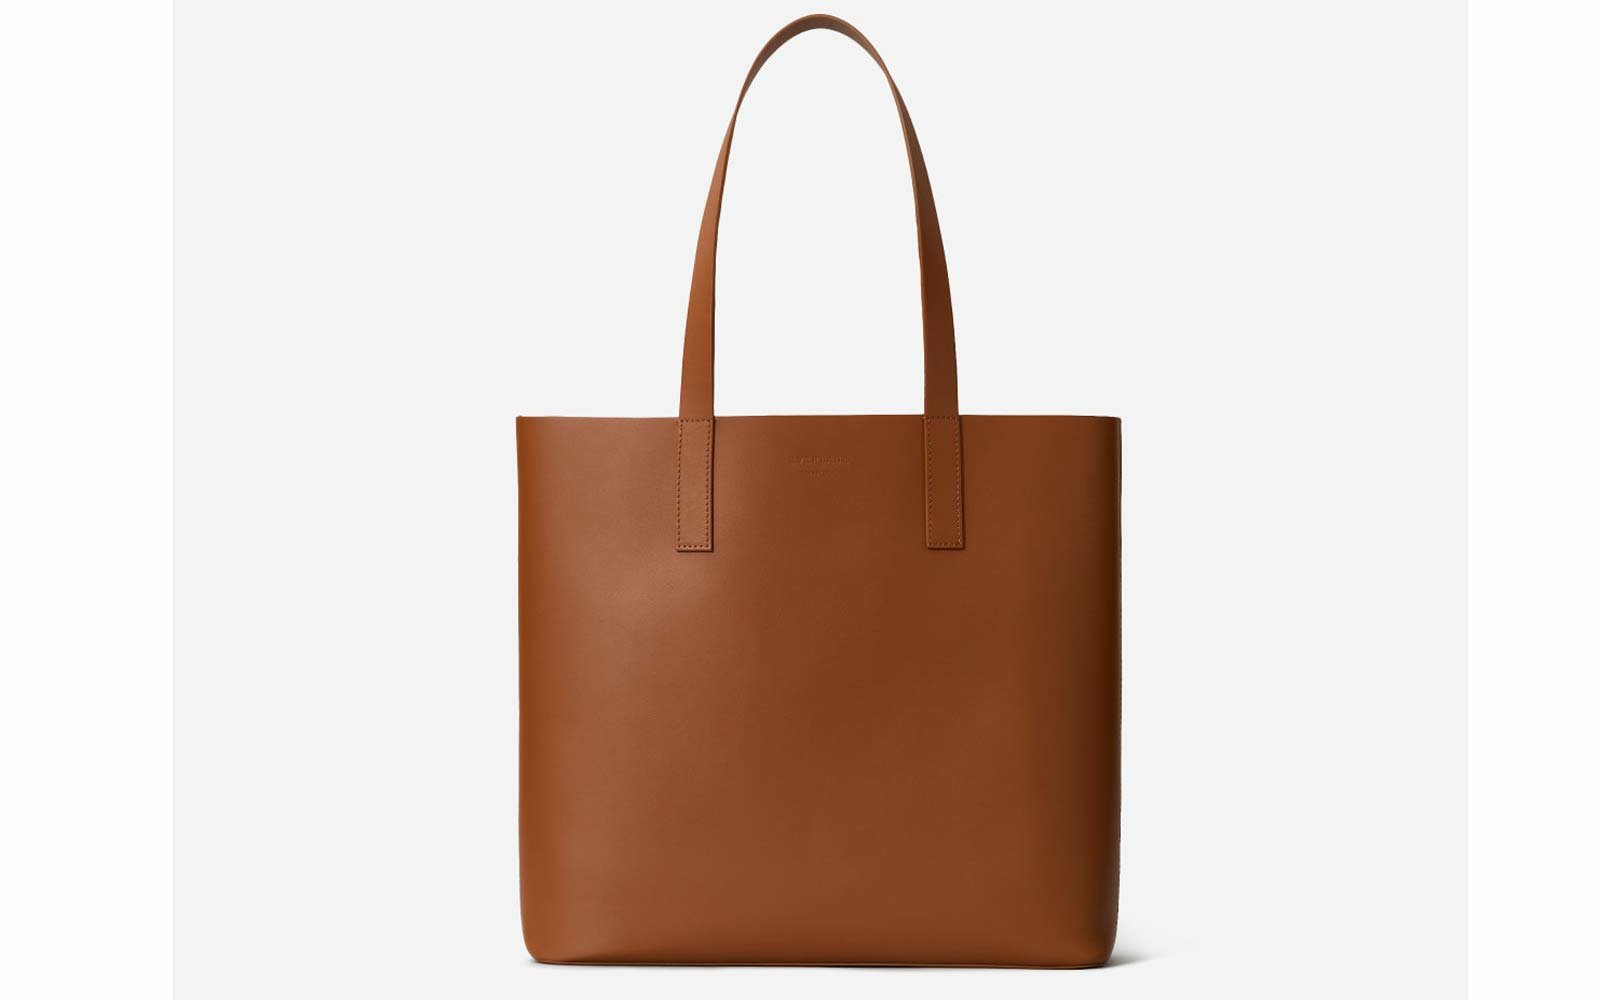 The Day Square Tote in Cognac